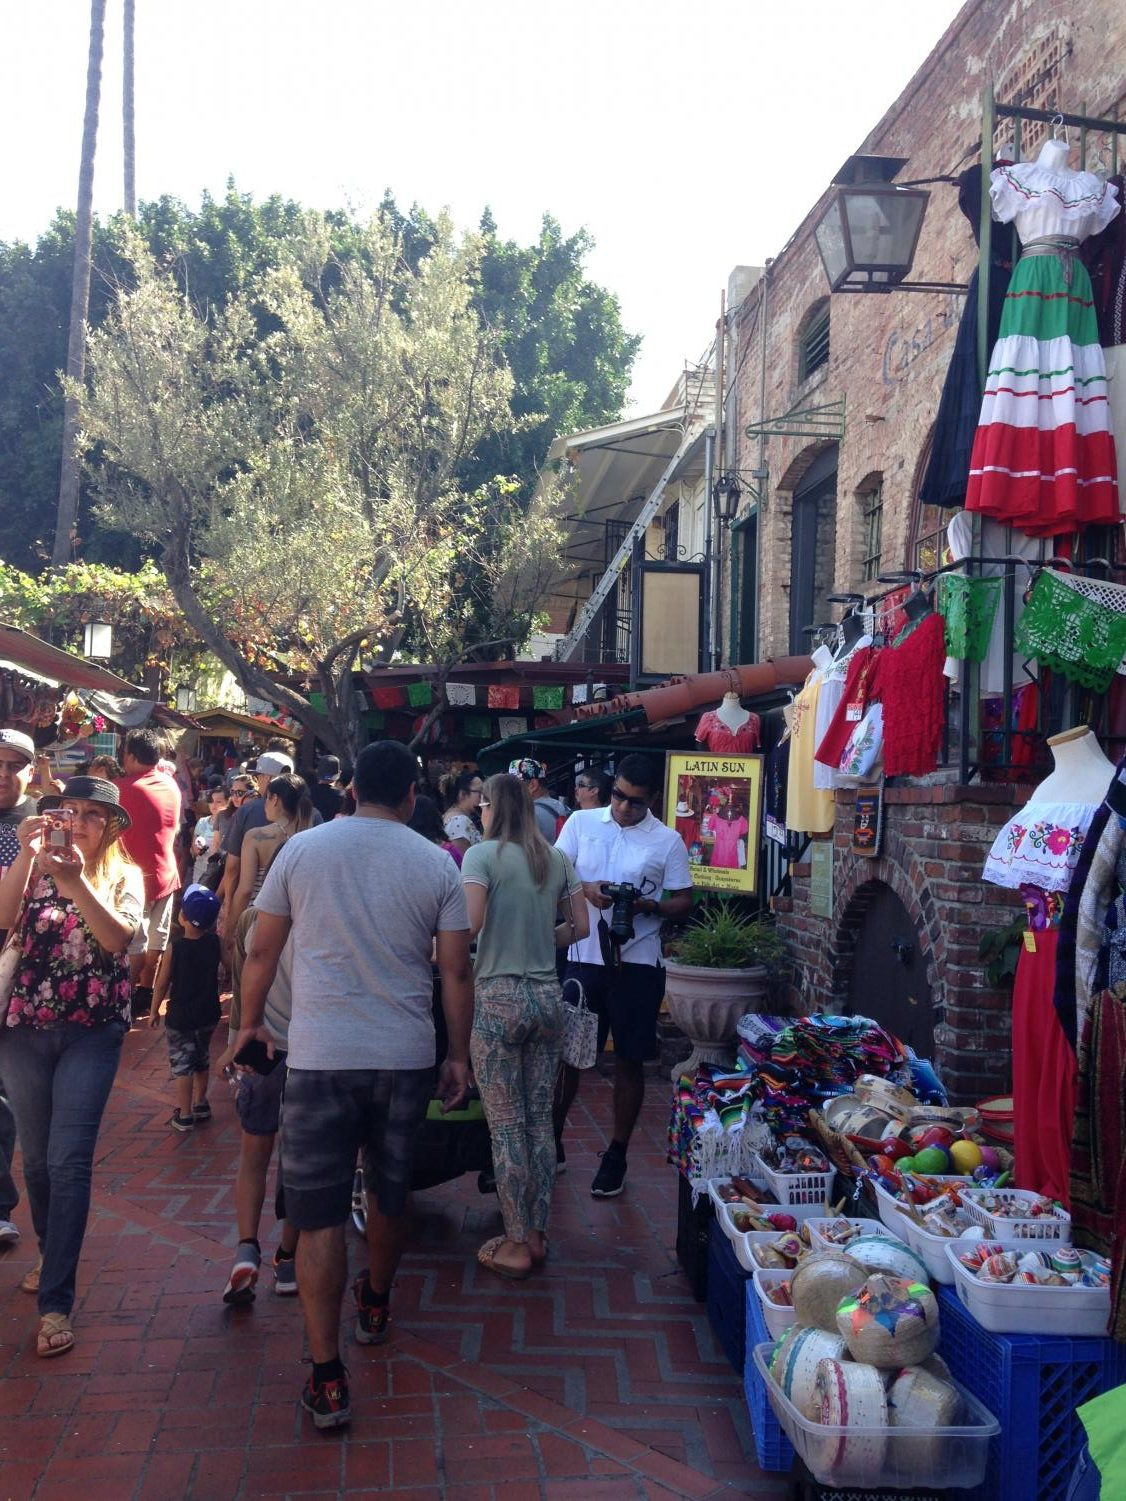 The string of vendors at the heart of Olvera Street.